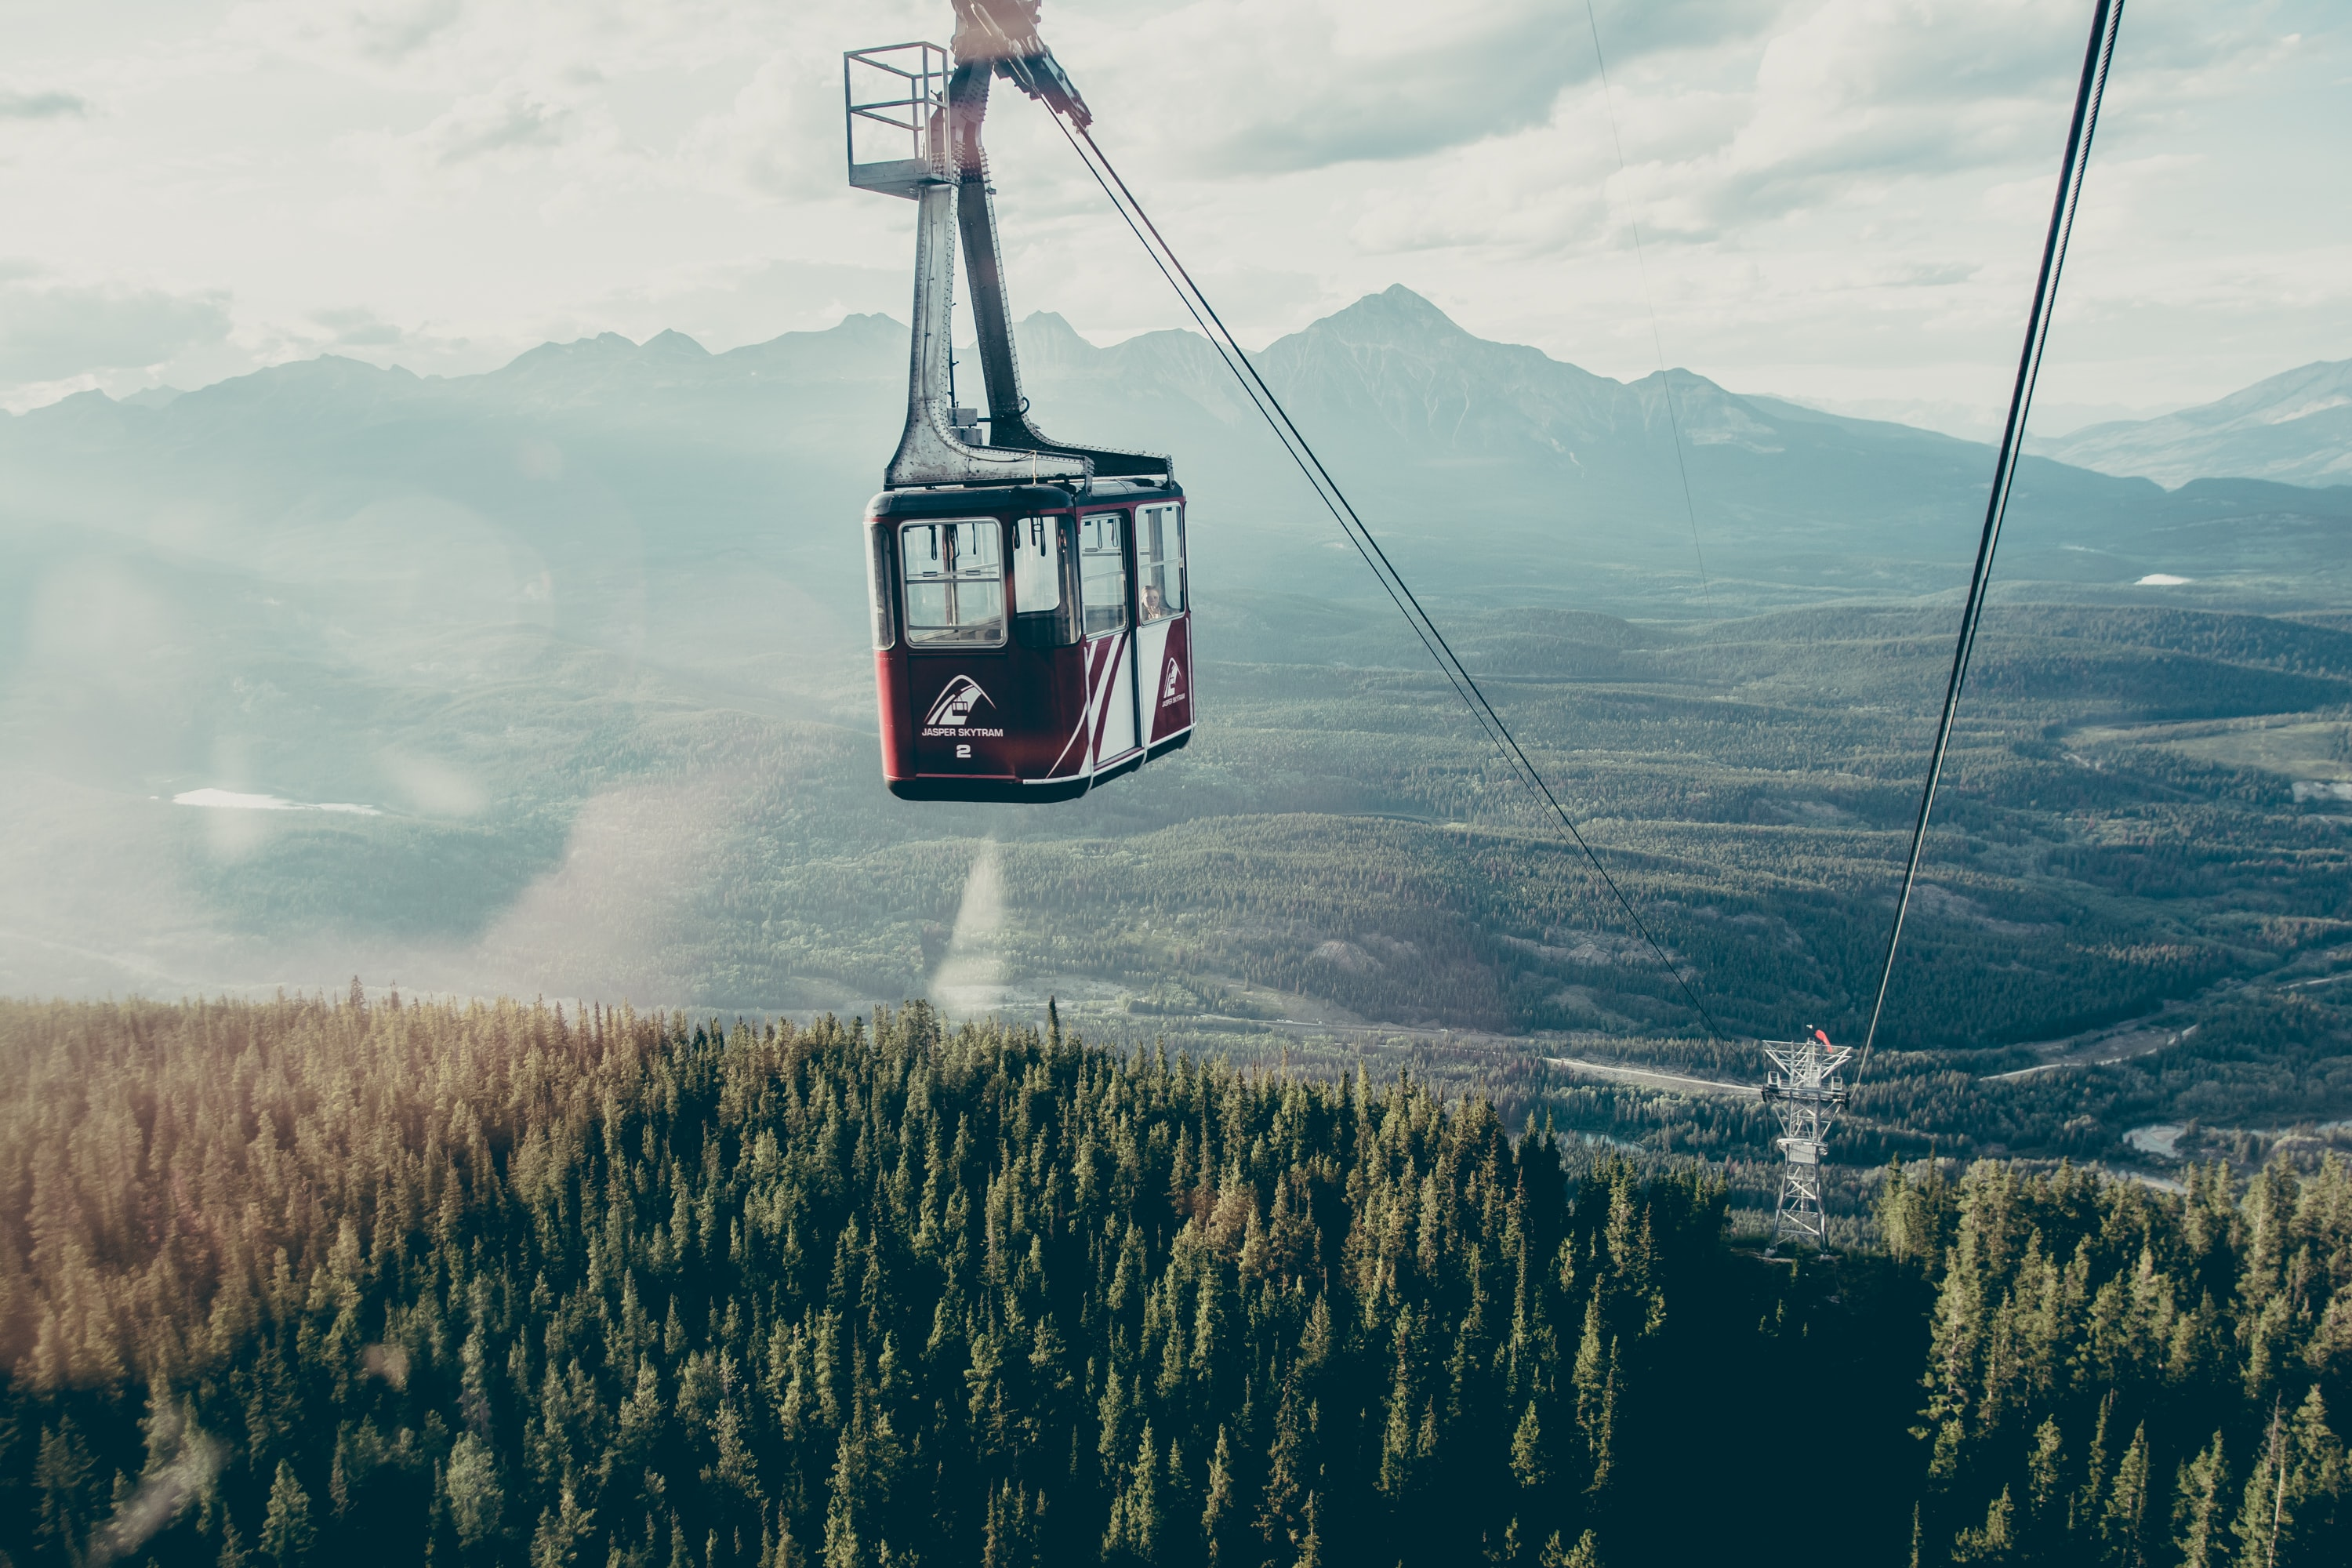 A gondola ski lift over an evergreen forest in the mountains